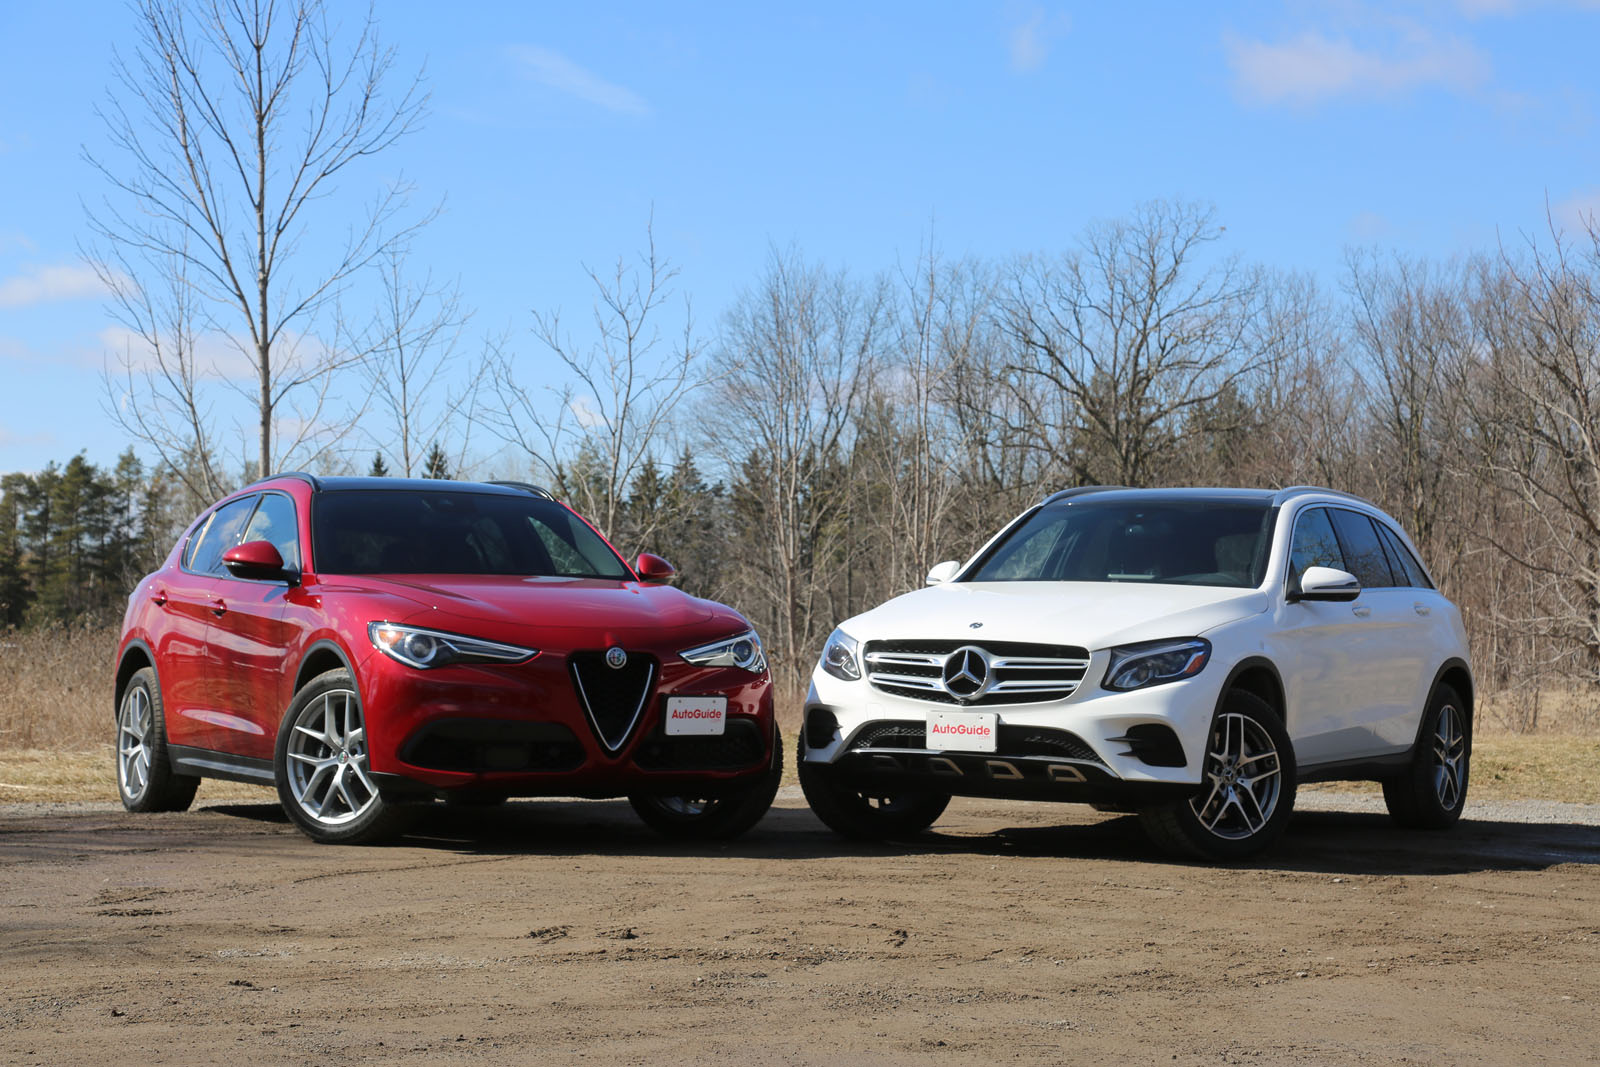 2018 alfa romeo stelvio vs mercedes benz glc comparison for Alfa romeo vs mercedes benz